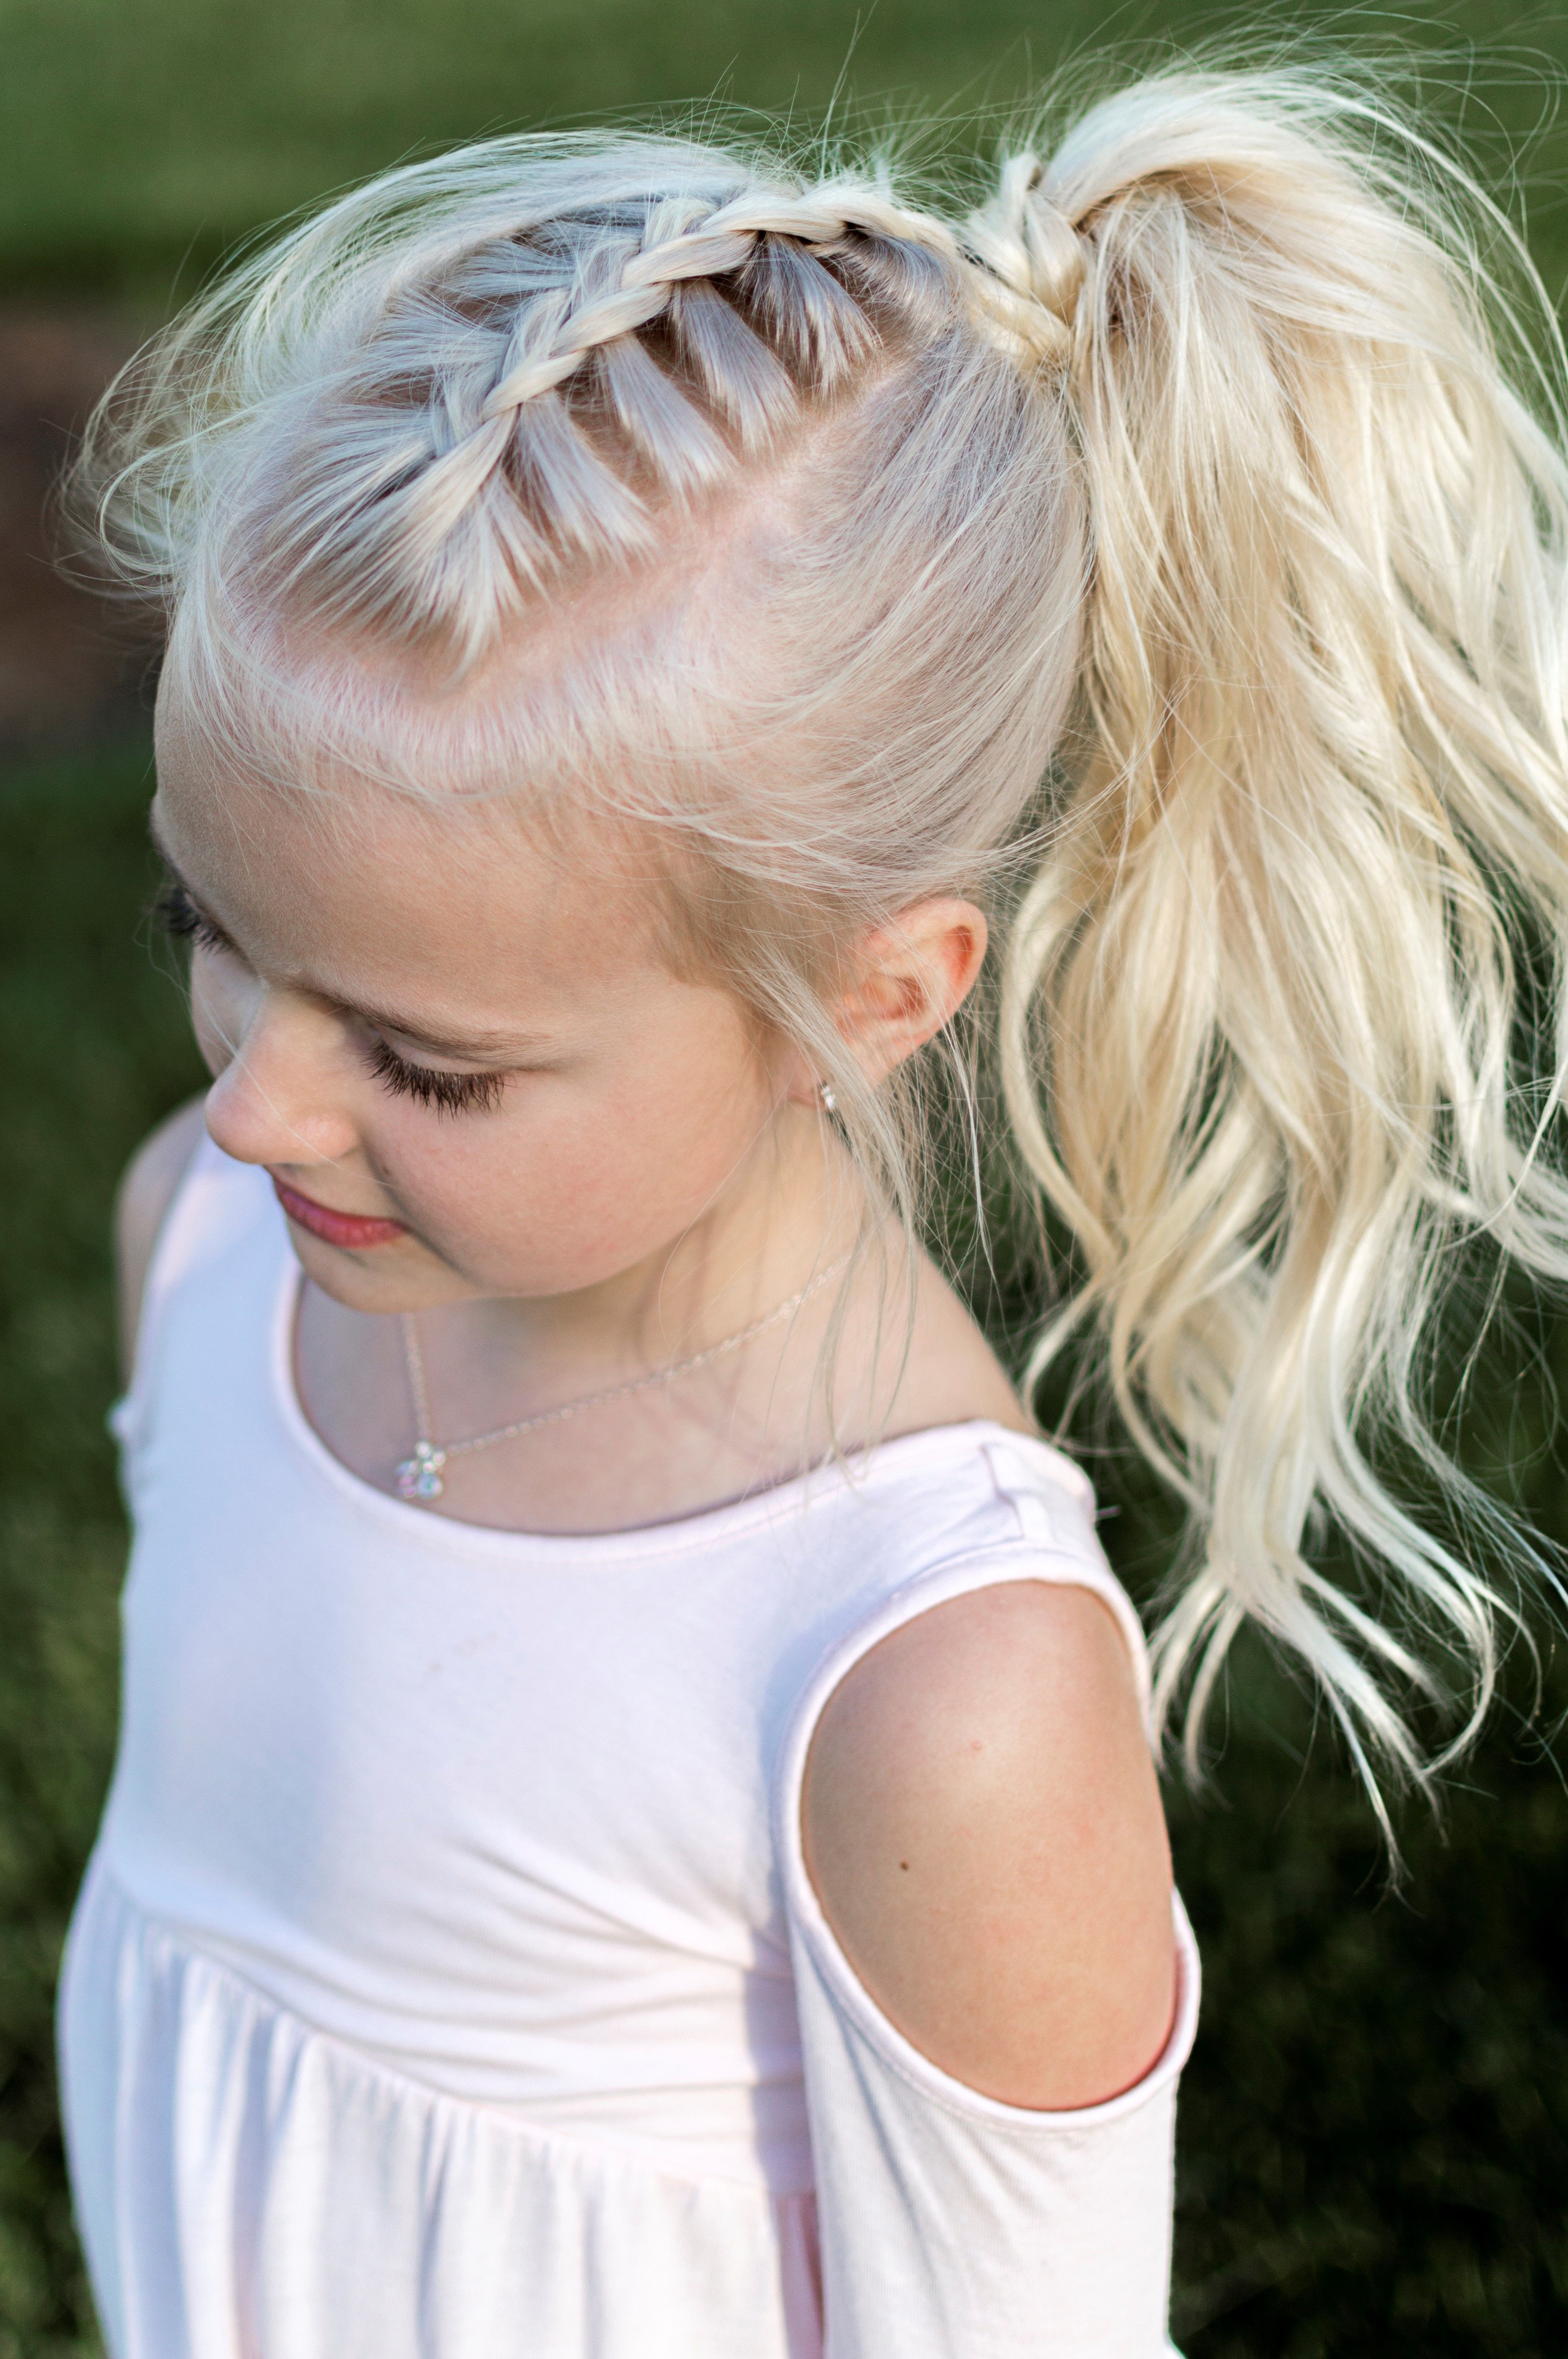 Little Girl Hairstyle French Braid Pony Tail Curls High Pony With Preferred French Braids Pony Hairstyles (View 13 of 20)